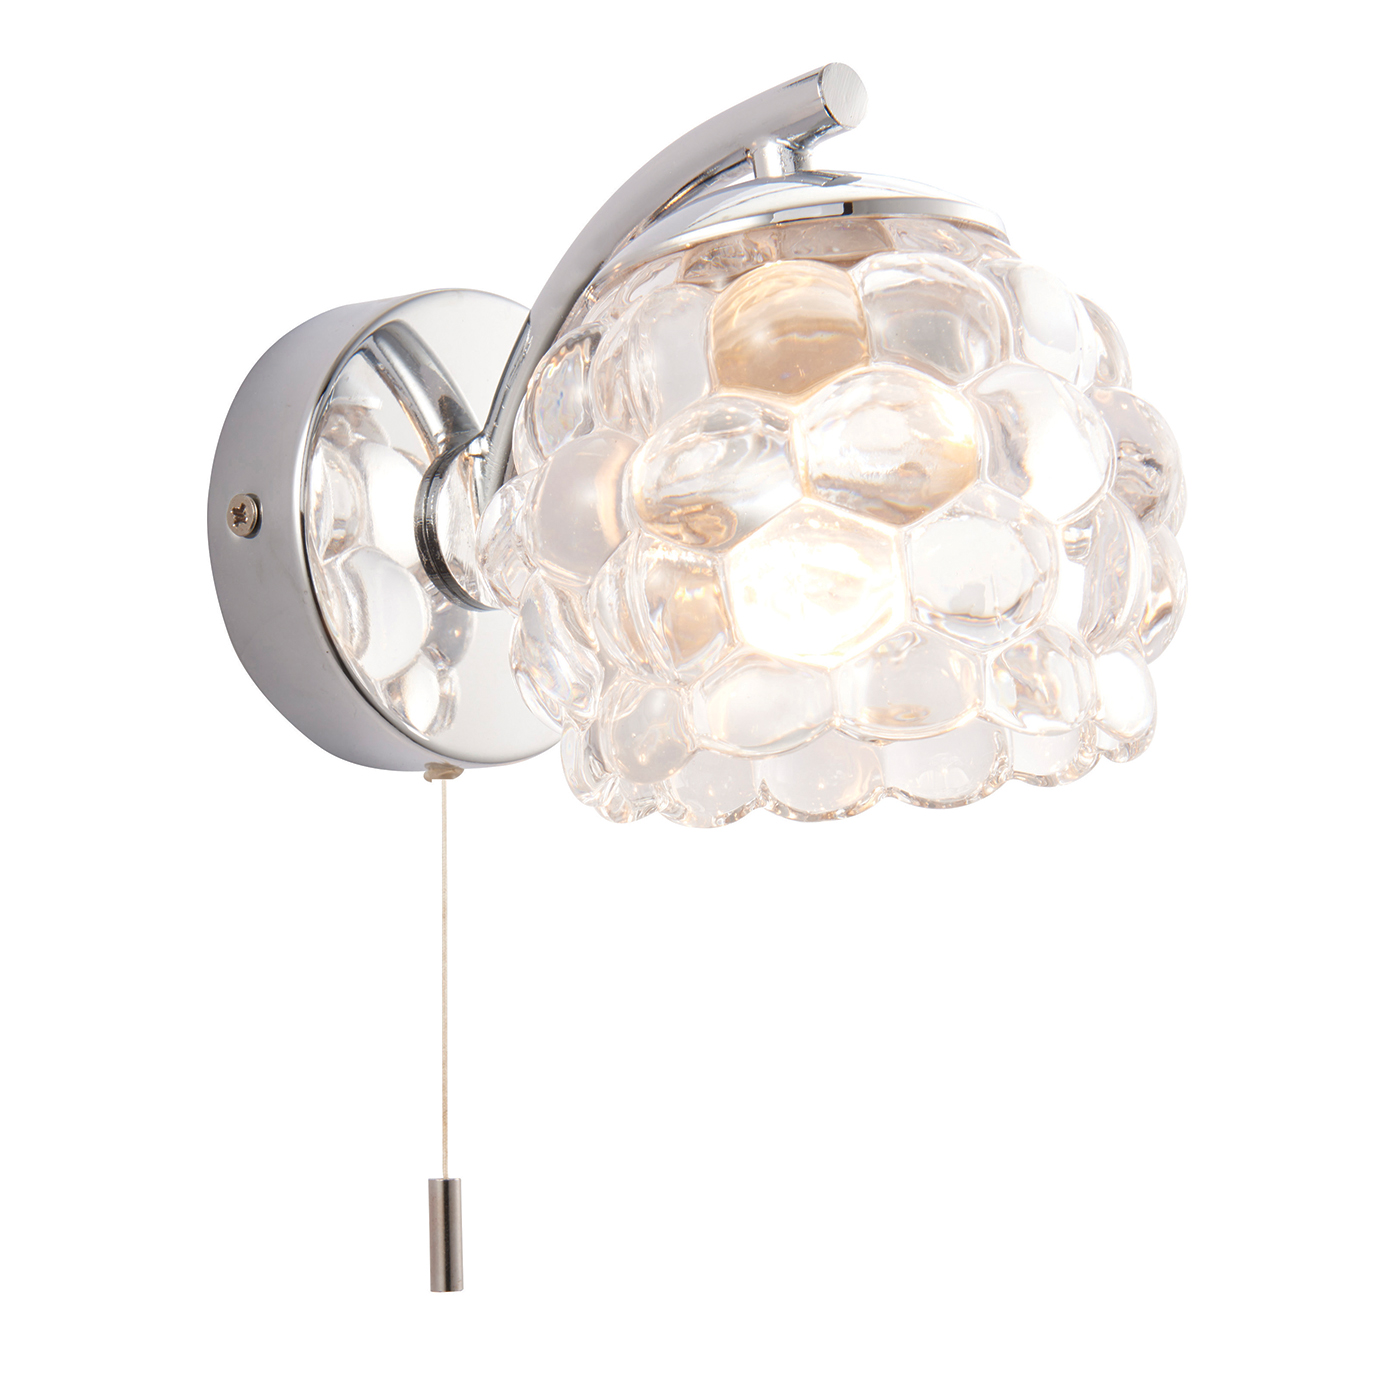 Endon Lawcross 1lt bathroom wall light IP44 18W Chrome & clear glass pull cord Thumbnail 1